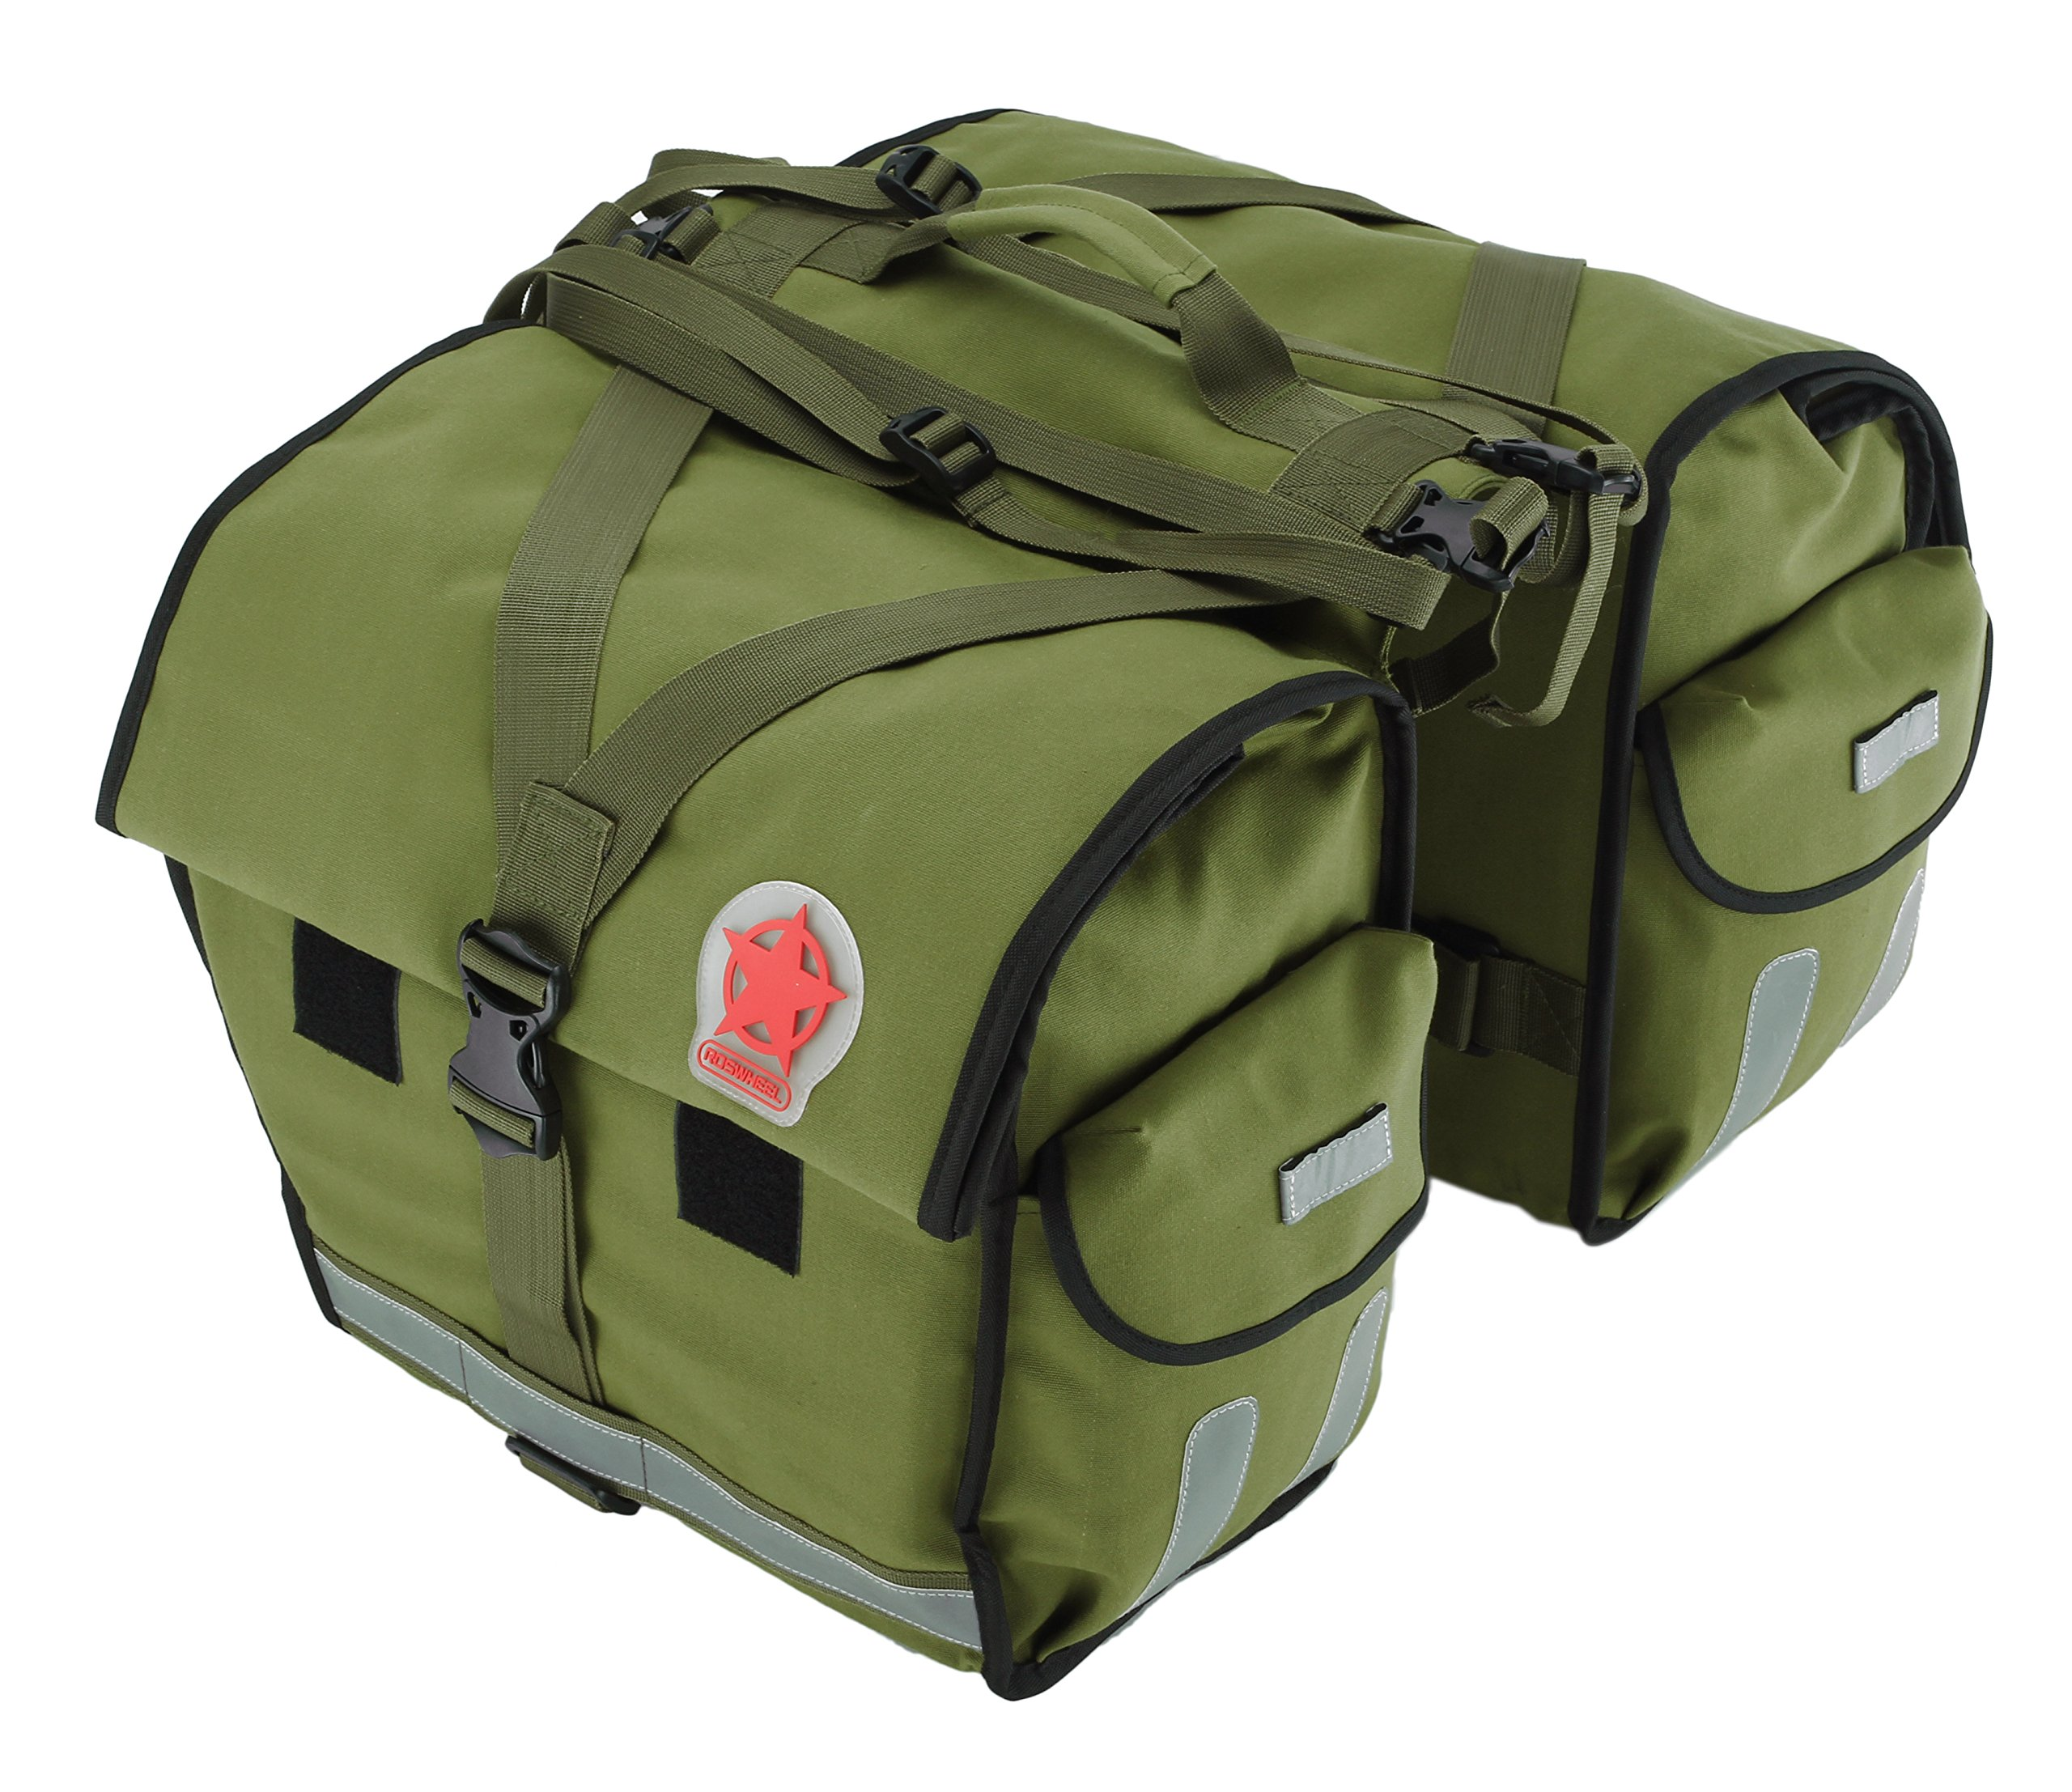 Roswheel 14686 Expedition Series Bike Rear Rack Bag Bicycle Double Panniers Cargo Trunk Bag by Roswheel (Image #1)